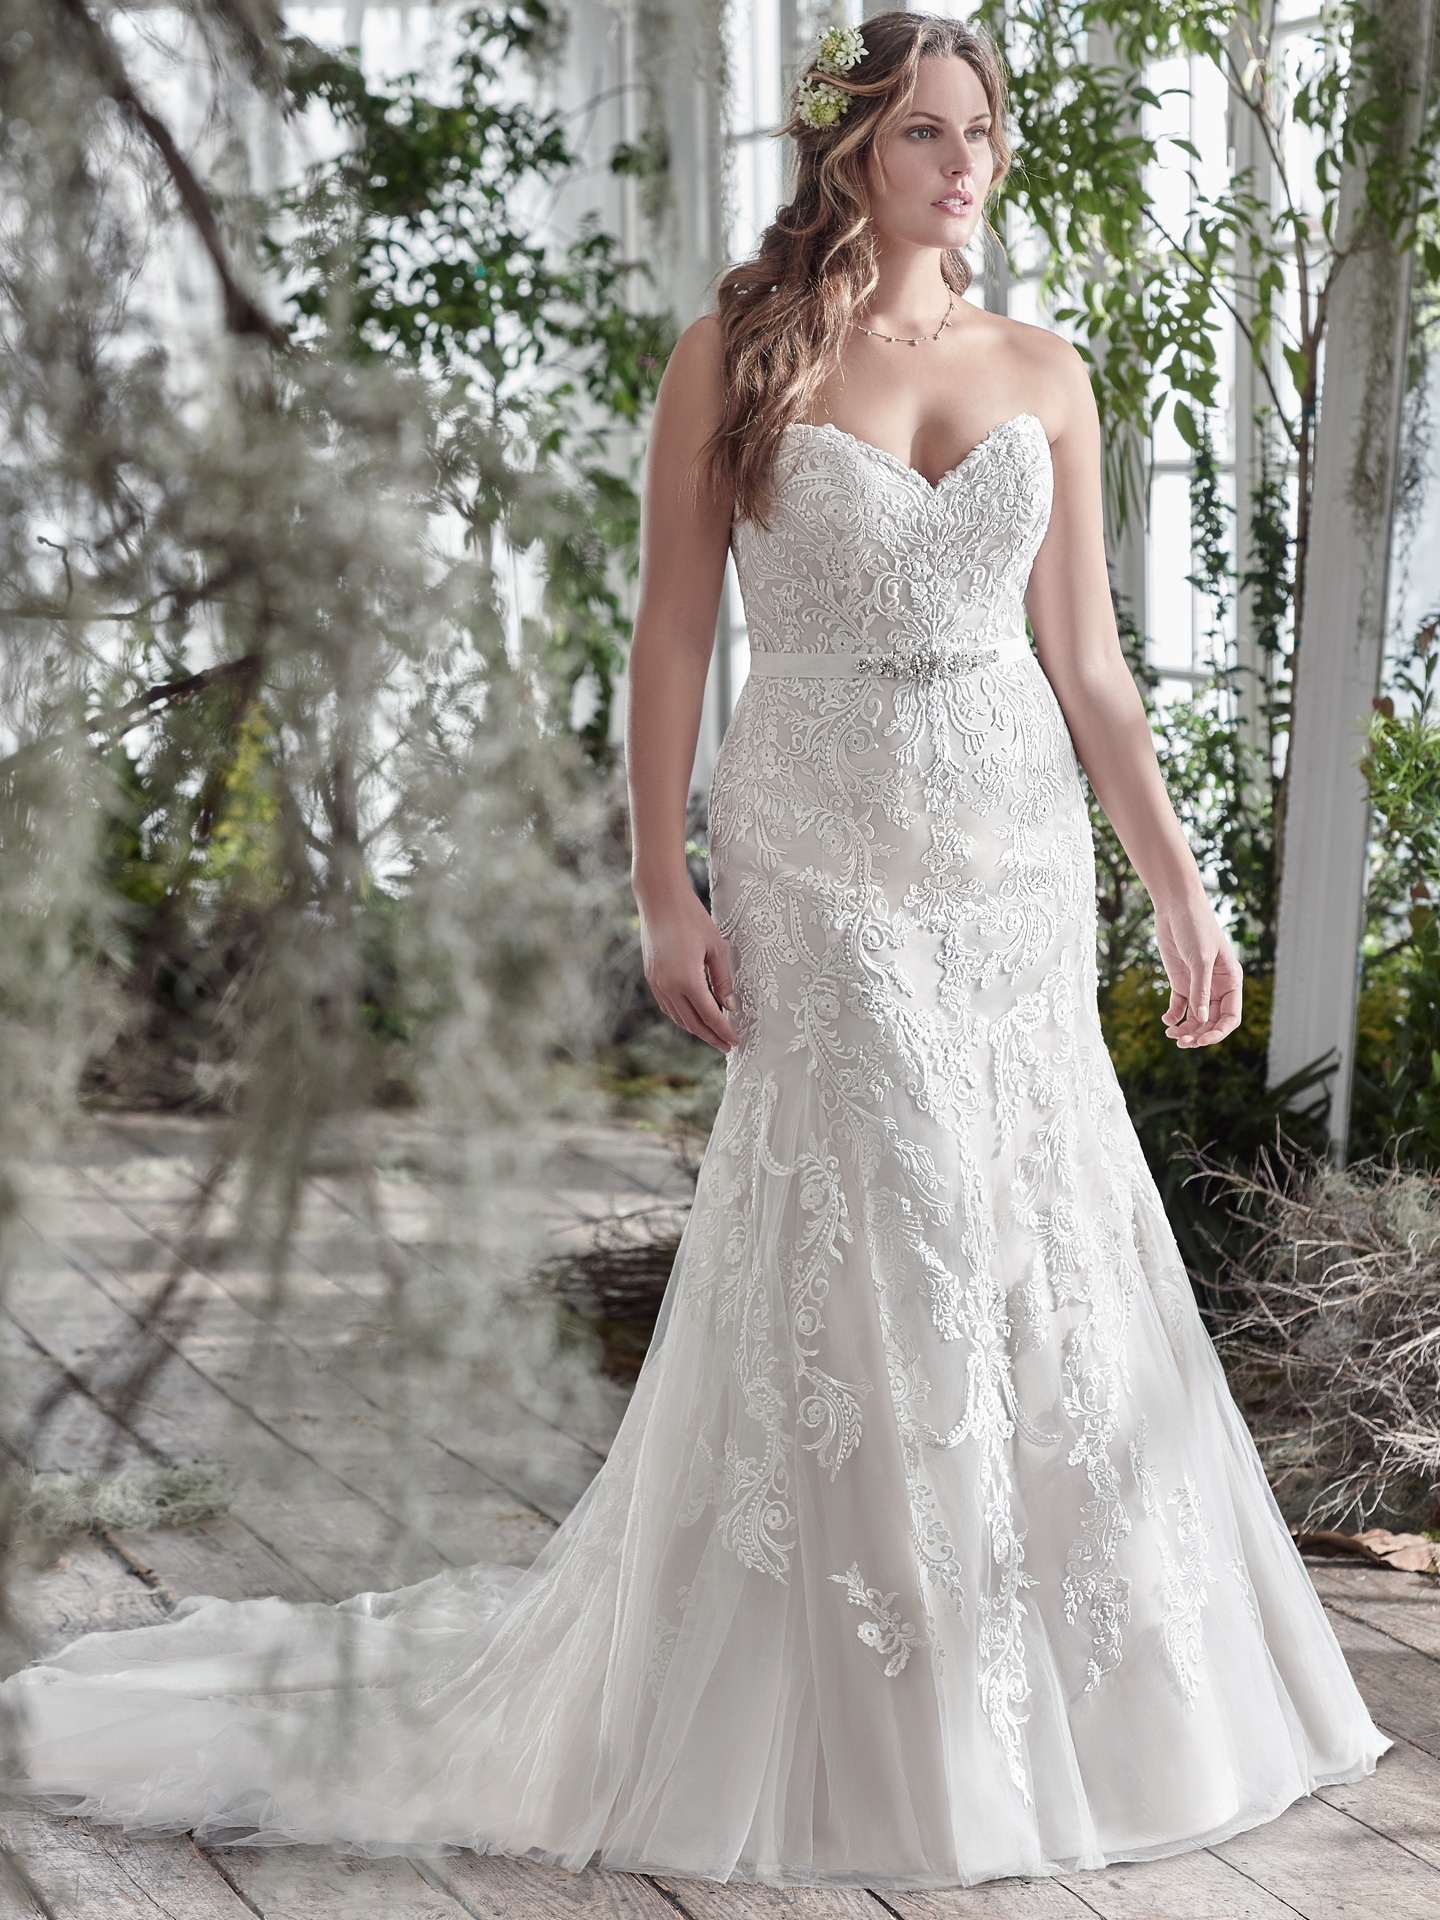 16 Best Wedding Gowns of 2016 - Winstyn by Maggie Sottero